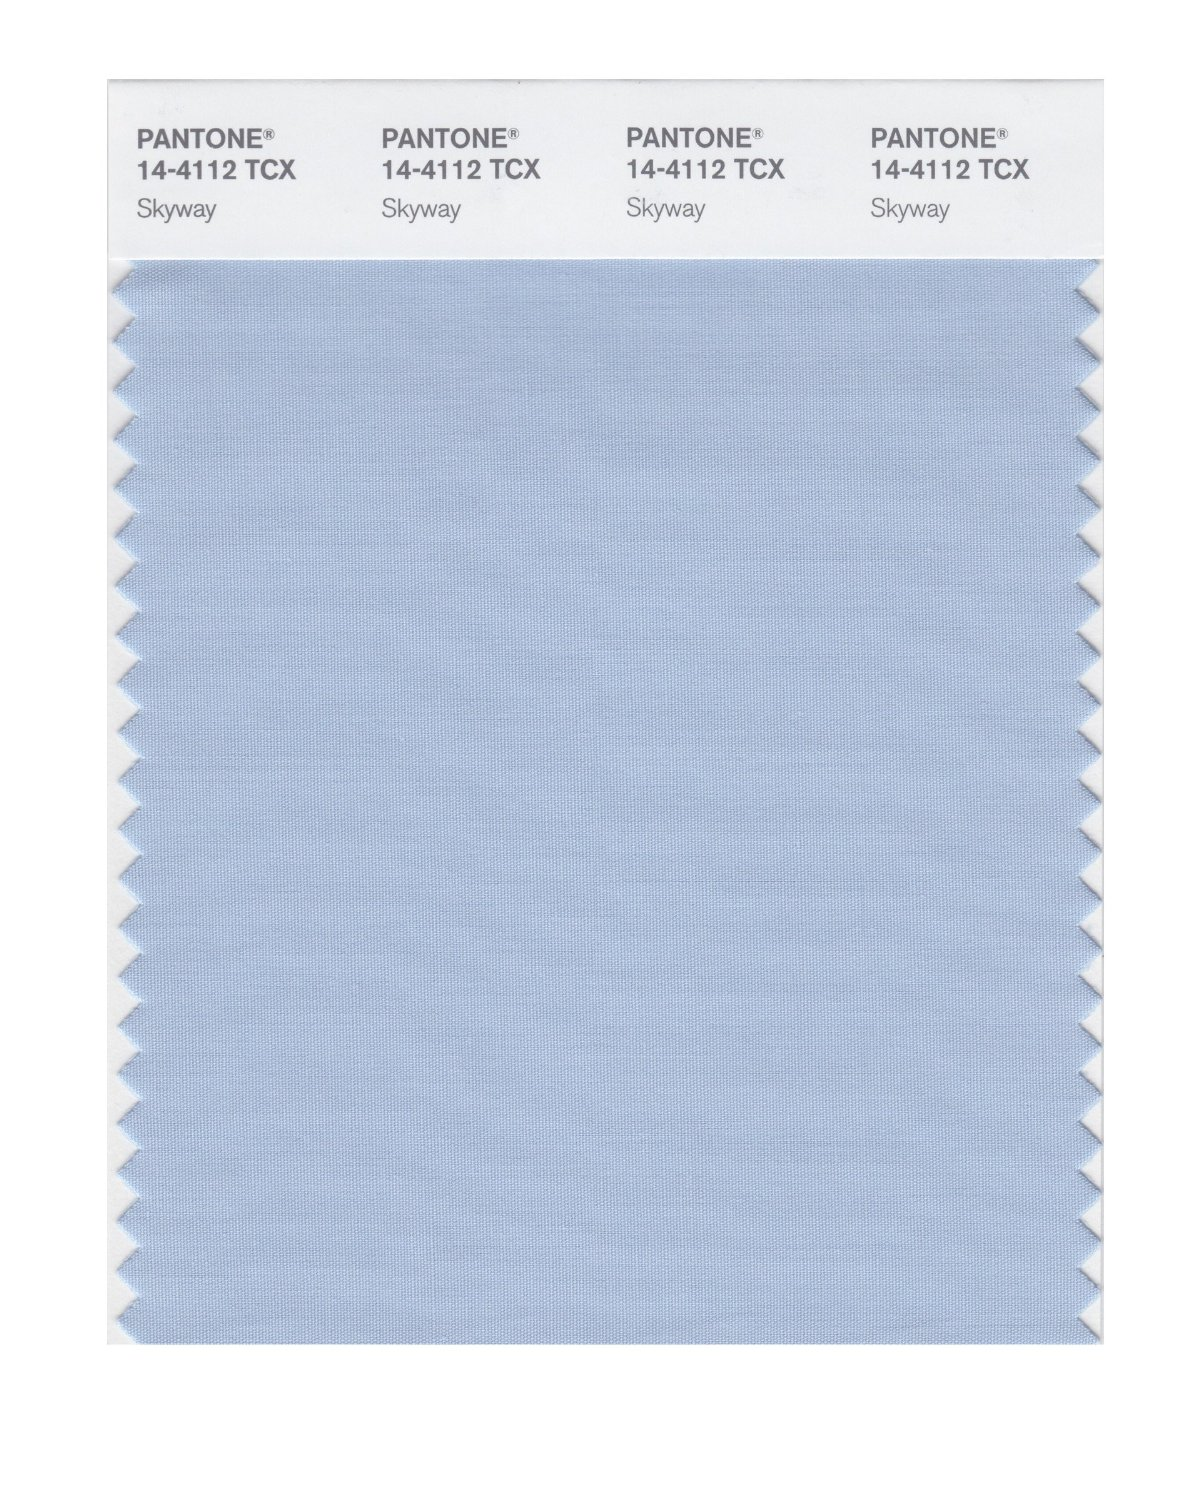 Pantone Smart Swatch 14-4112 Skyway